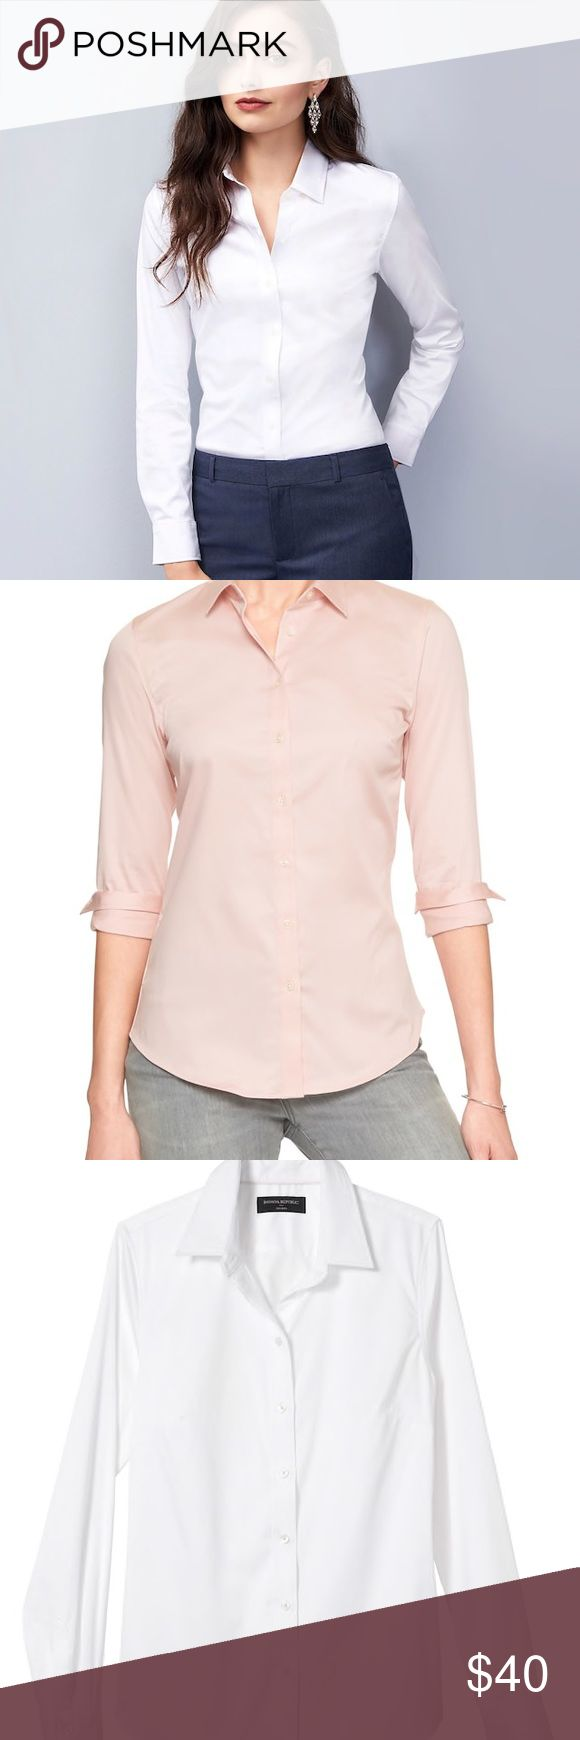 Banana Republic Non Iron Shirts (2)!! One white and one pink non iron banana republic non iron button up shirt! Very lightly used! In great condition! Banana Republic Tops Button Down Shirts